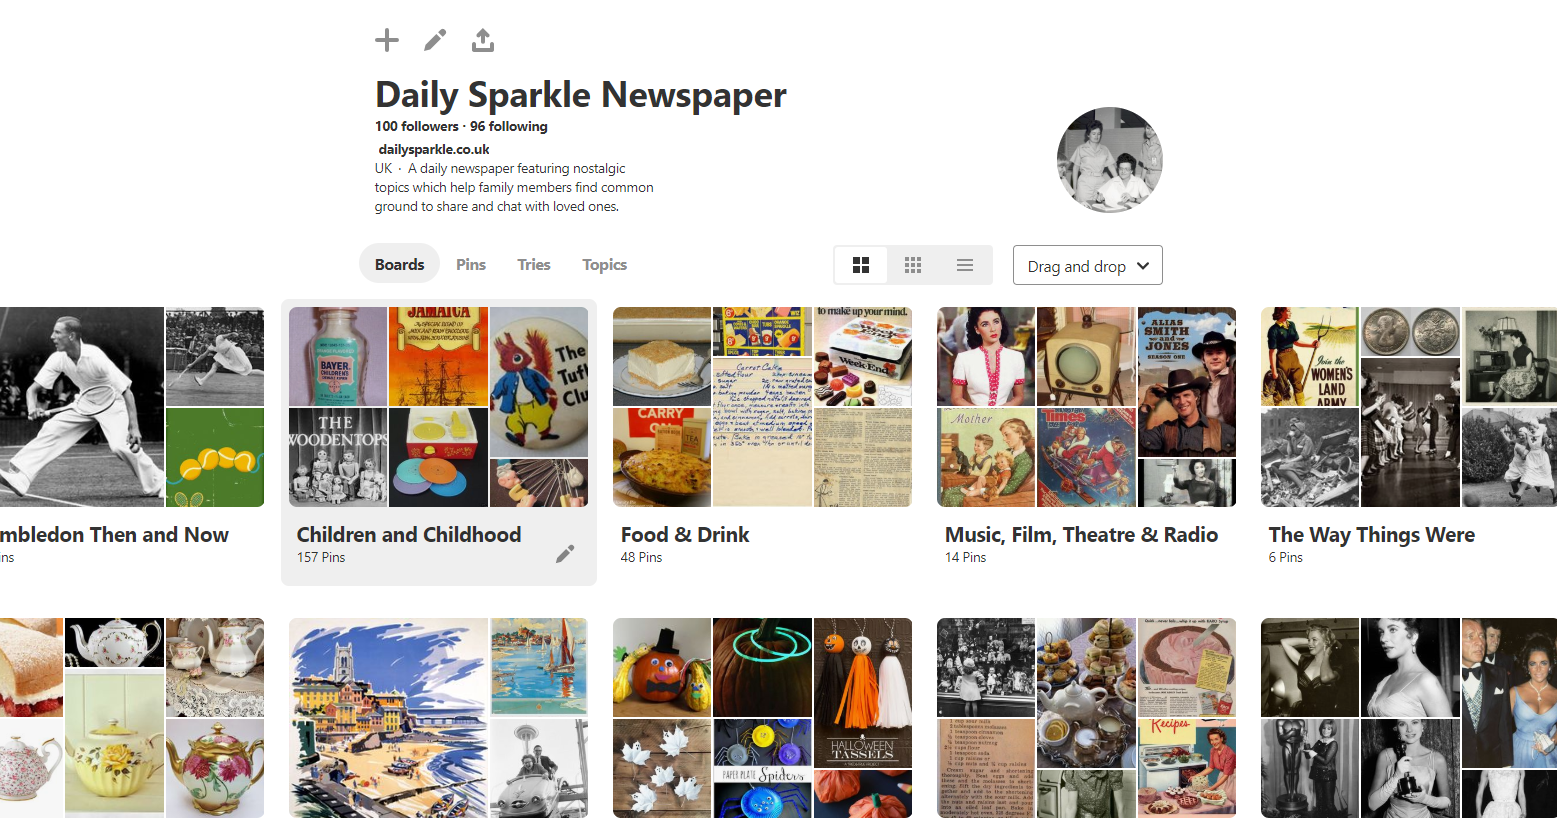 How to Use Pinterest - Daily Sparkle